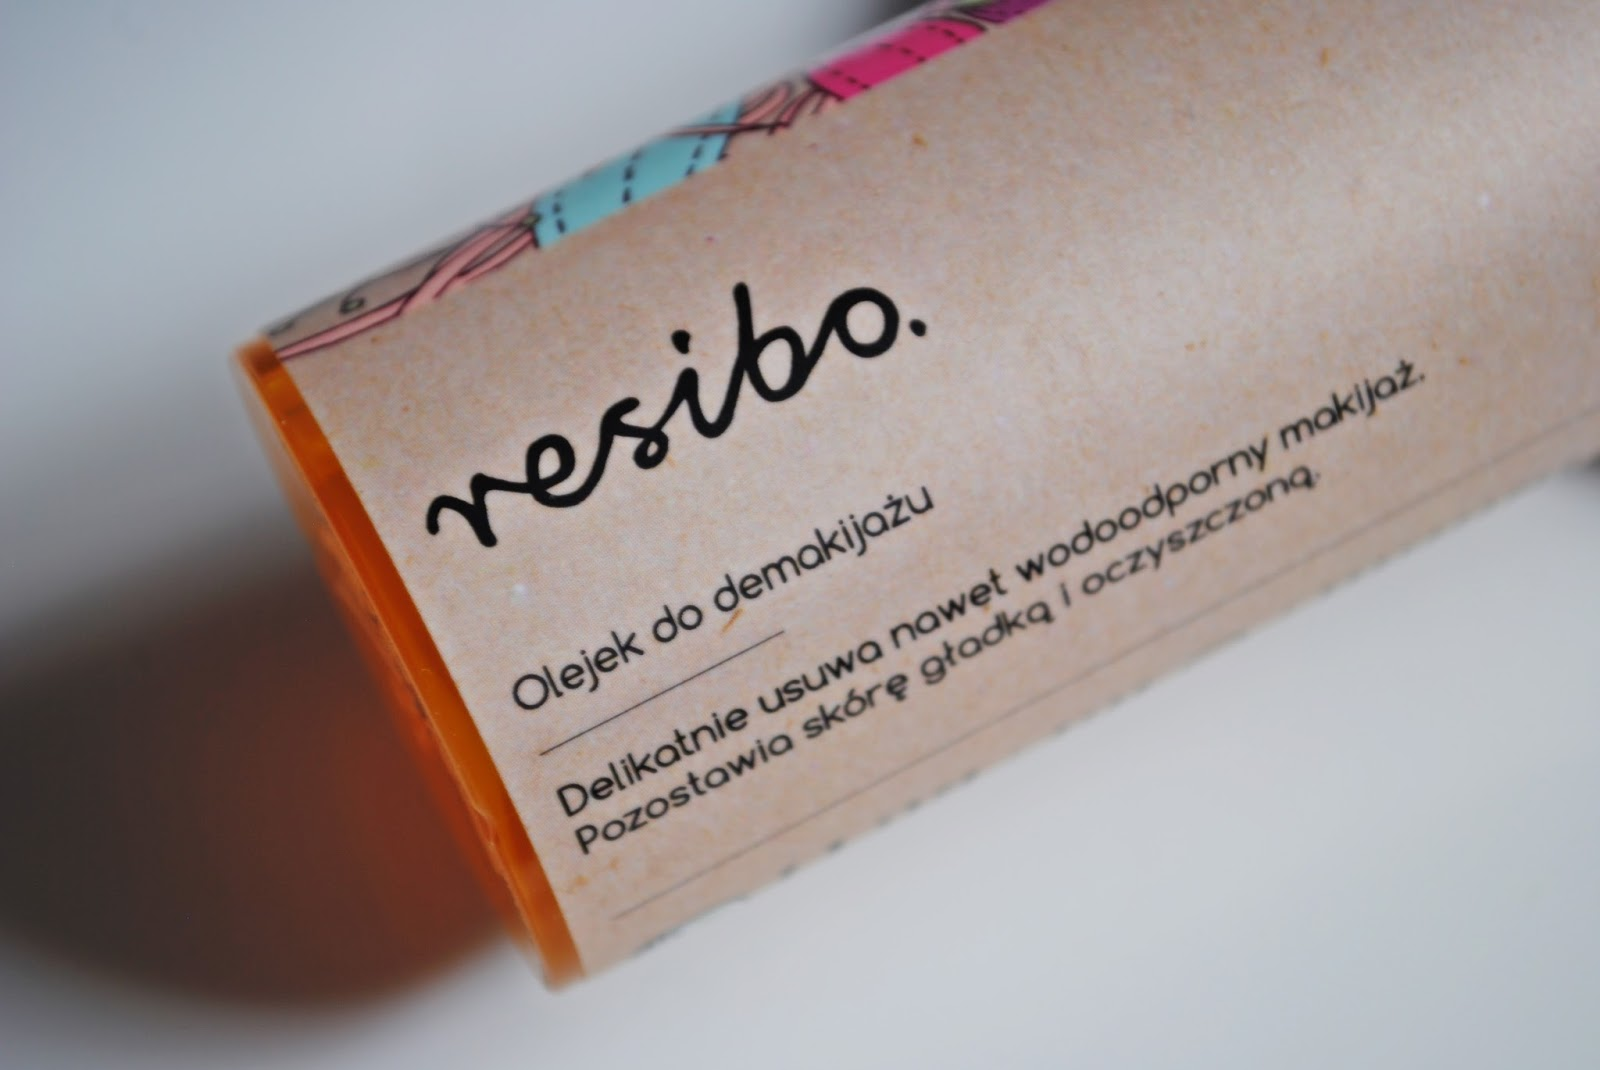 Olejek do demakijażu Resibo beautypediapatt.blogspot.com